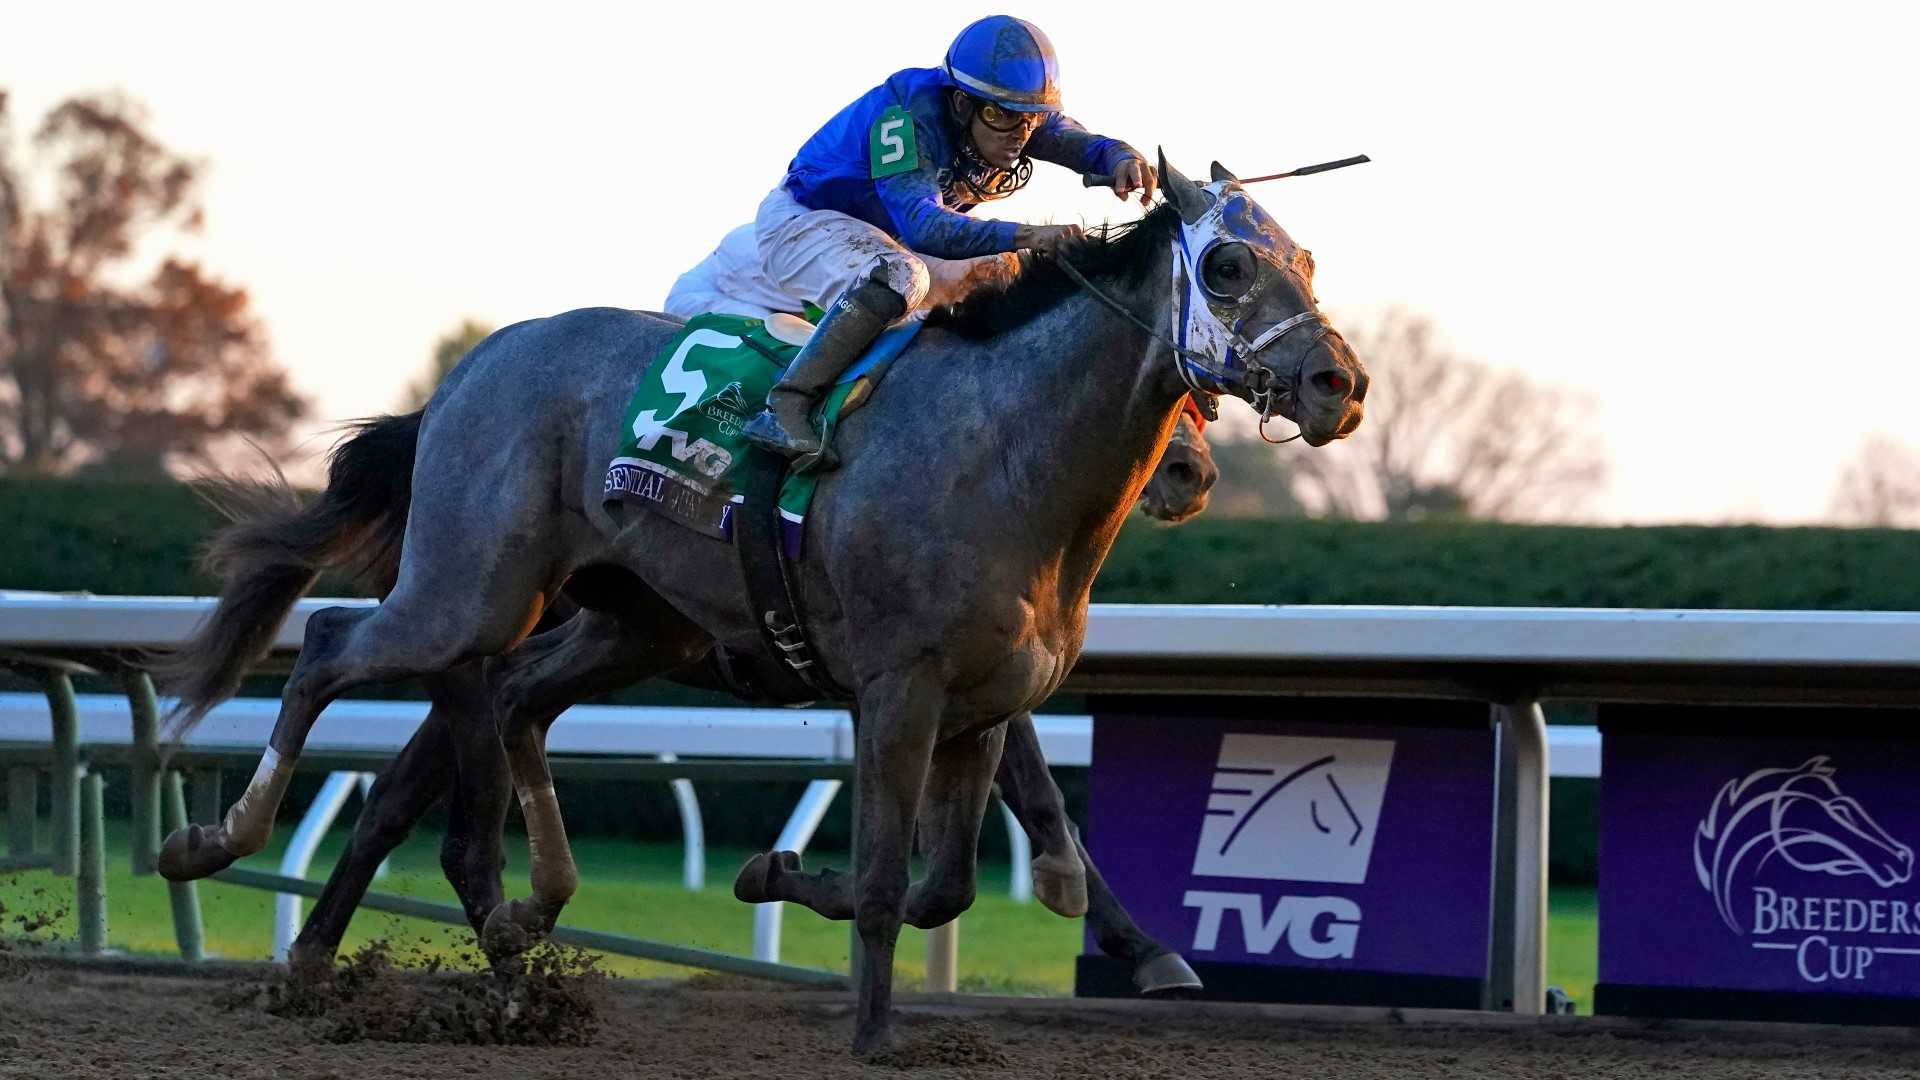 Trainer of Derby favorite Essential Quality previews the race